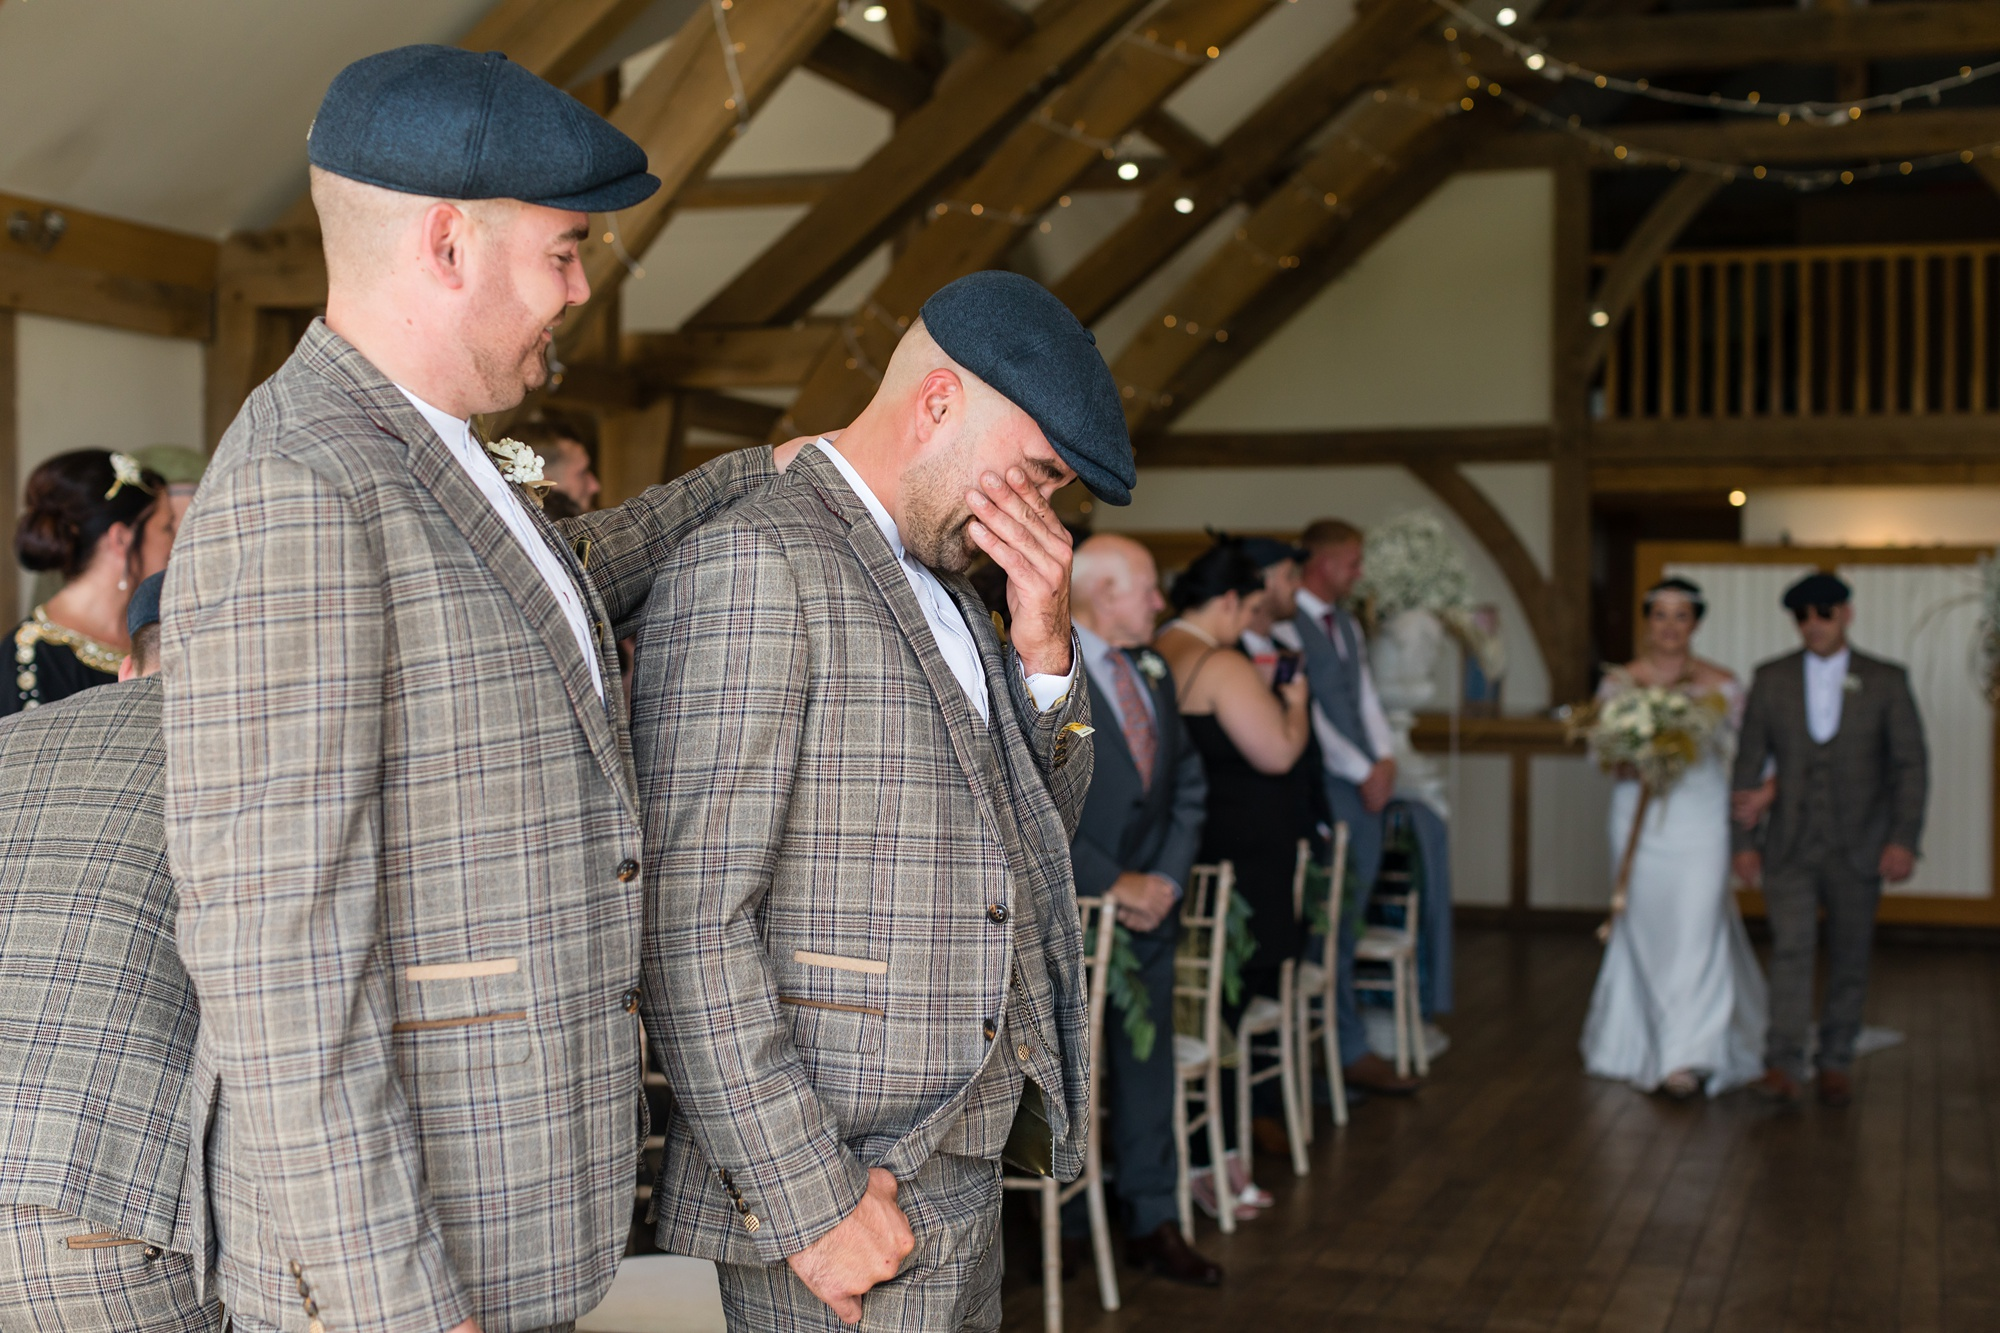 Groom cries as he sees his bride walk up the aisle at Sandburn Hall wedding.